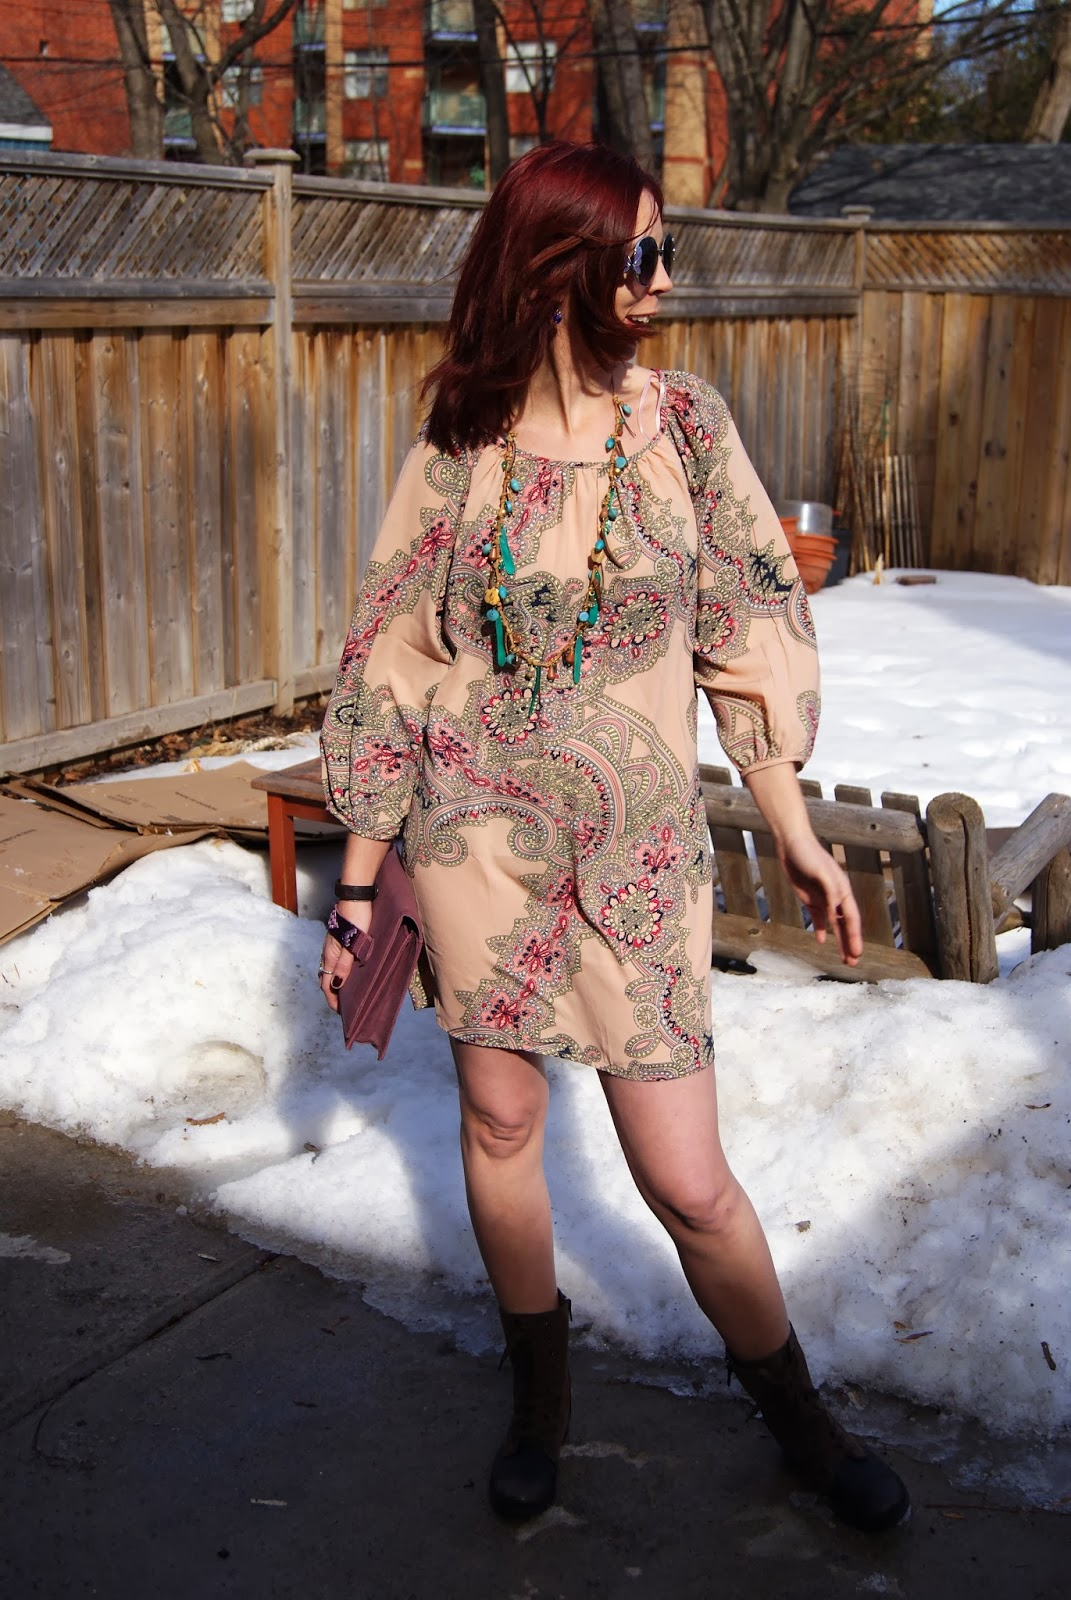 Hippie Chic!: Forever 21 Dress, House of Harlow 1960 Clutch from Winners, Wanted Boots from Marshalls, Fifth Avenue Necklace, fashion, style, blogger Melanie.Ps The Purple Scarf Toronto